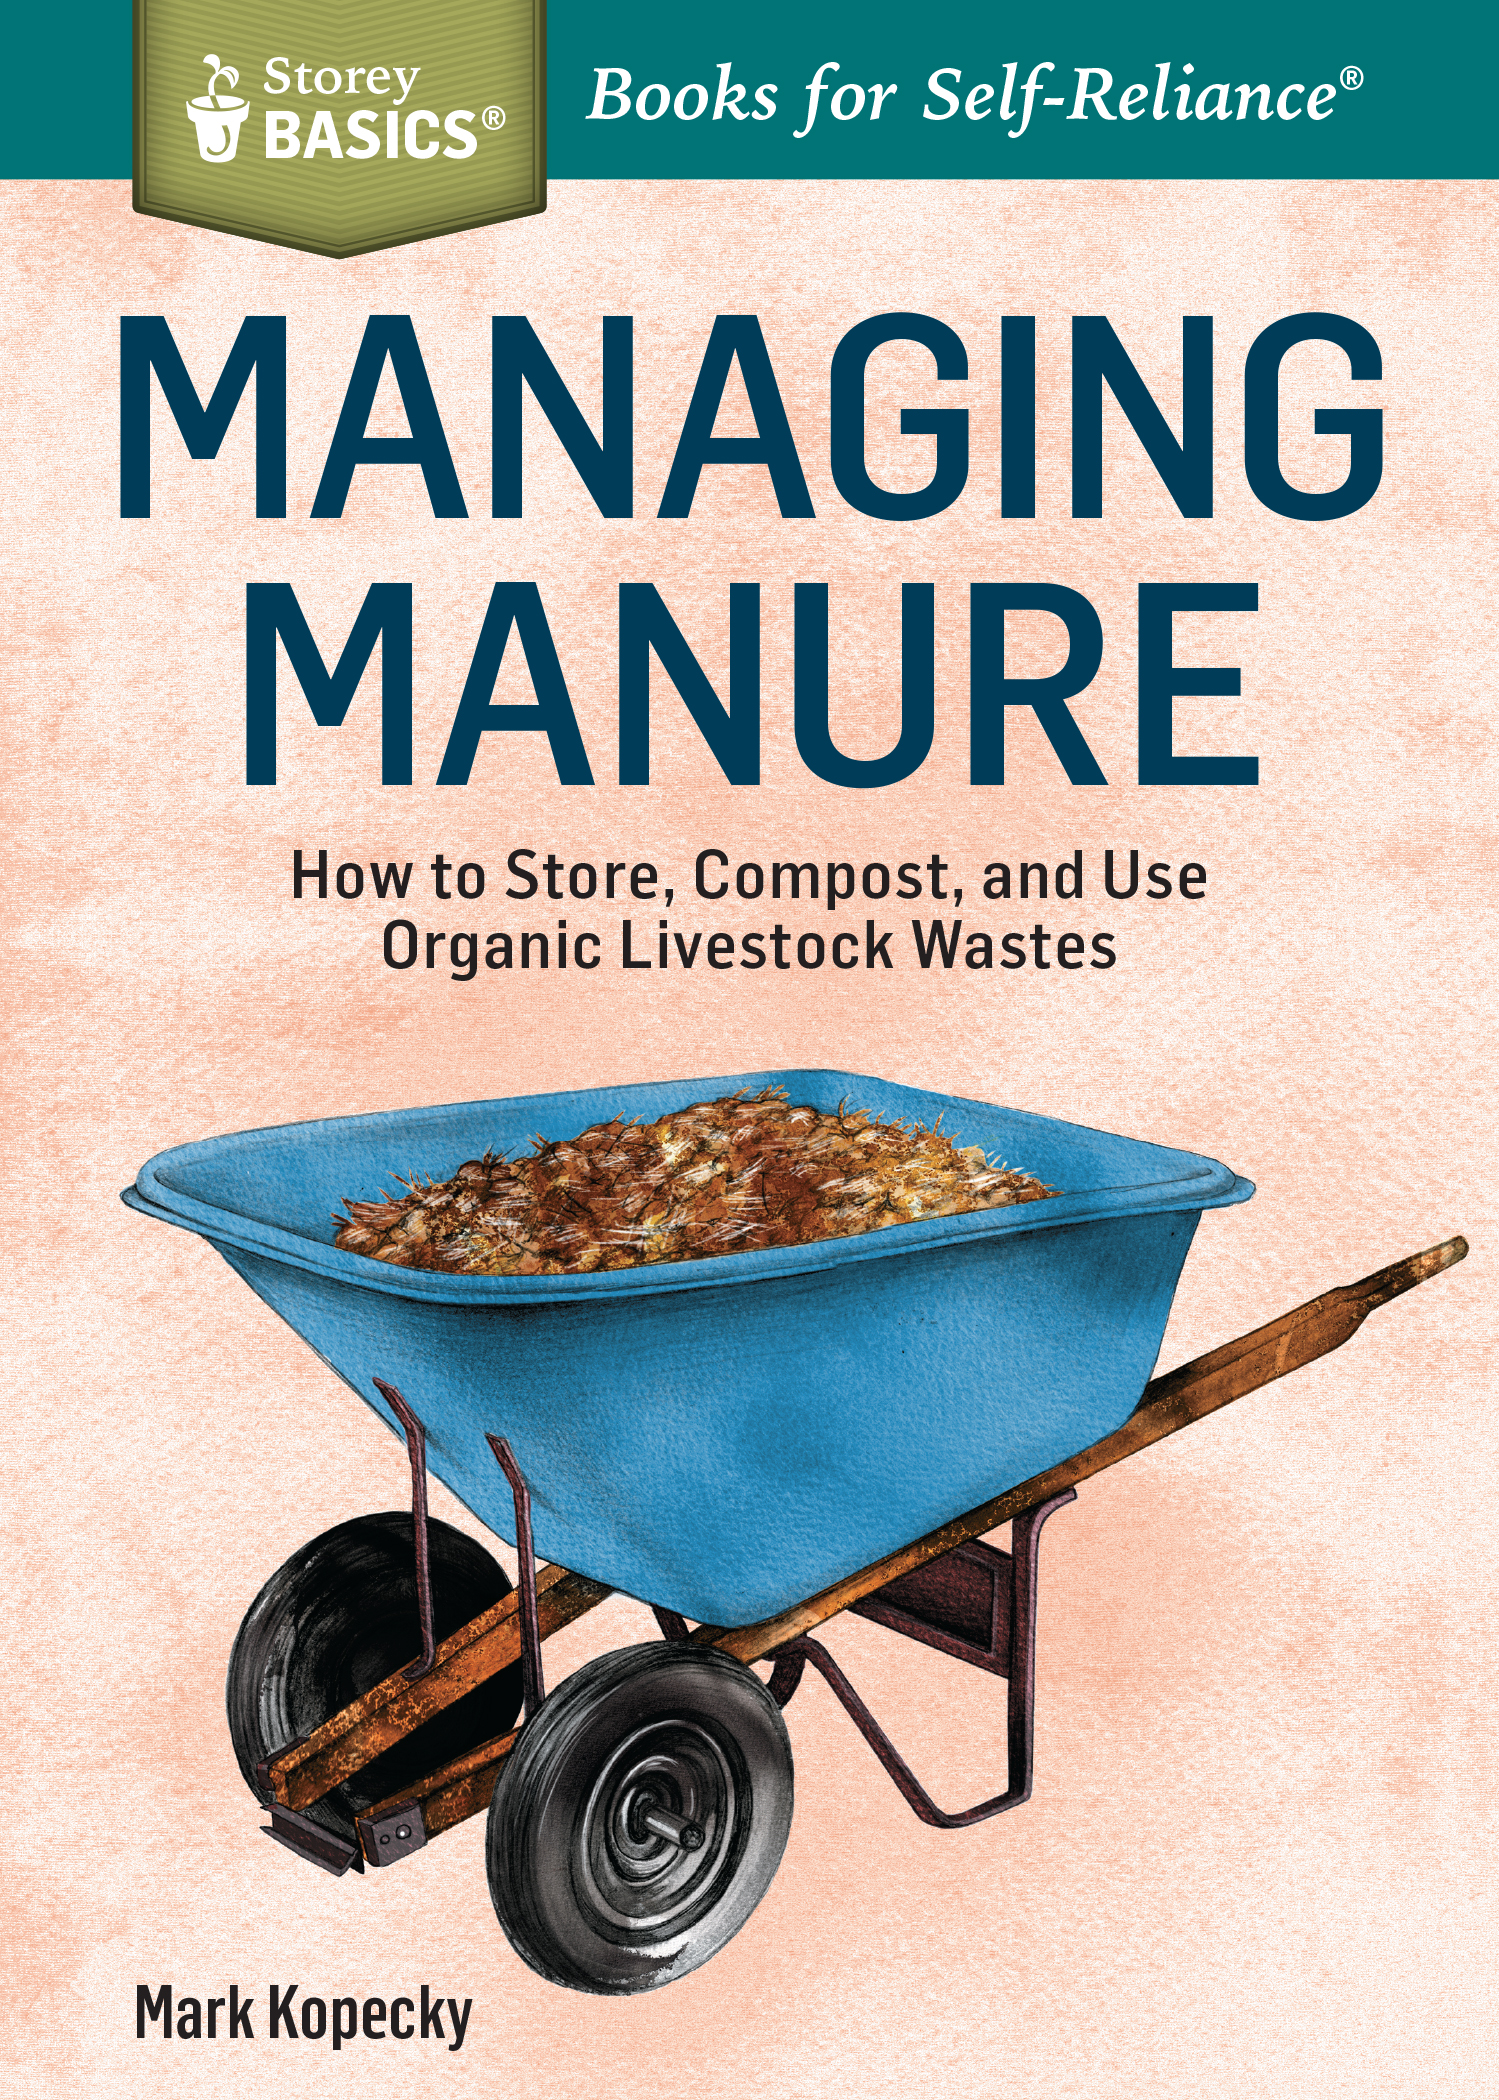 Managing Manure How to Store, Compost, and Use Organic Livestock Wastes. A Storey BASICS®Title - Mark Kopecky